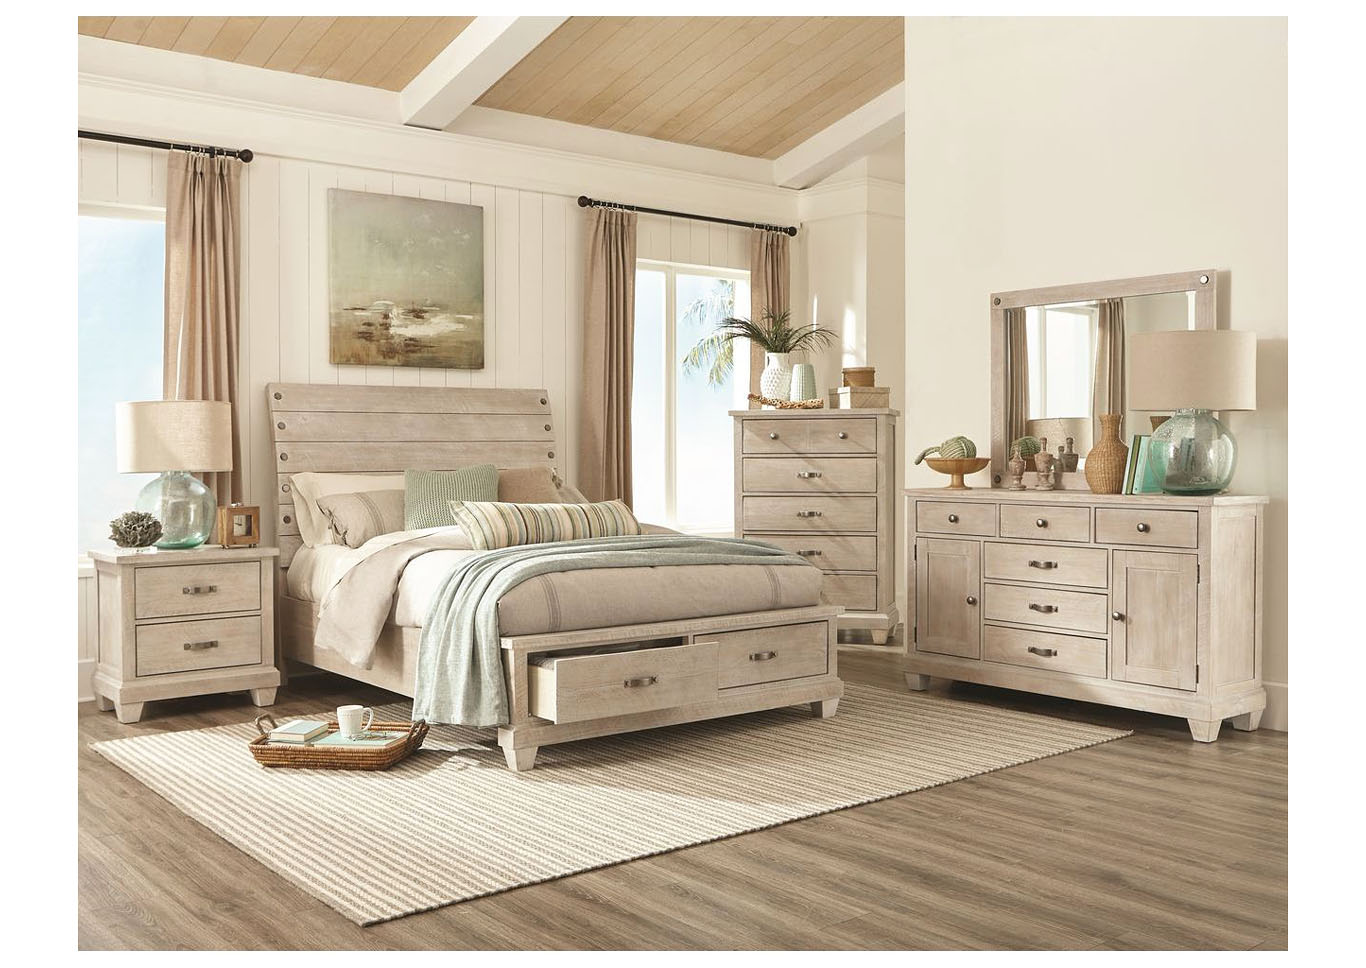 Rock White Wash Platform Storage Bedroom Set - Queen,Instore